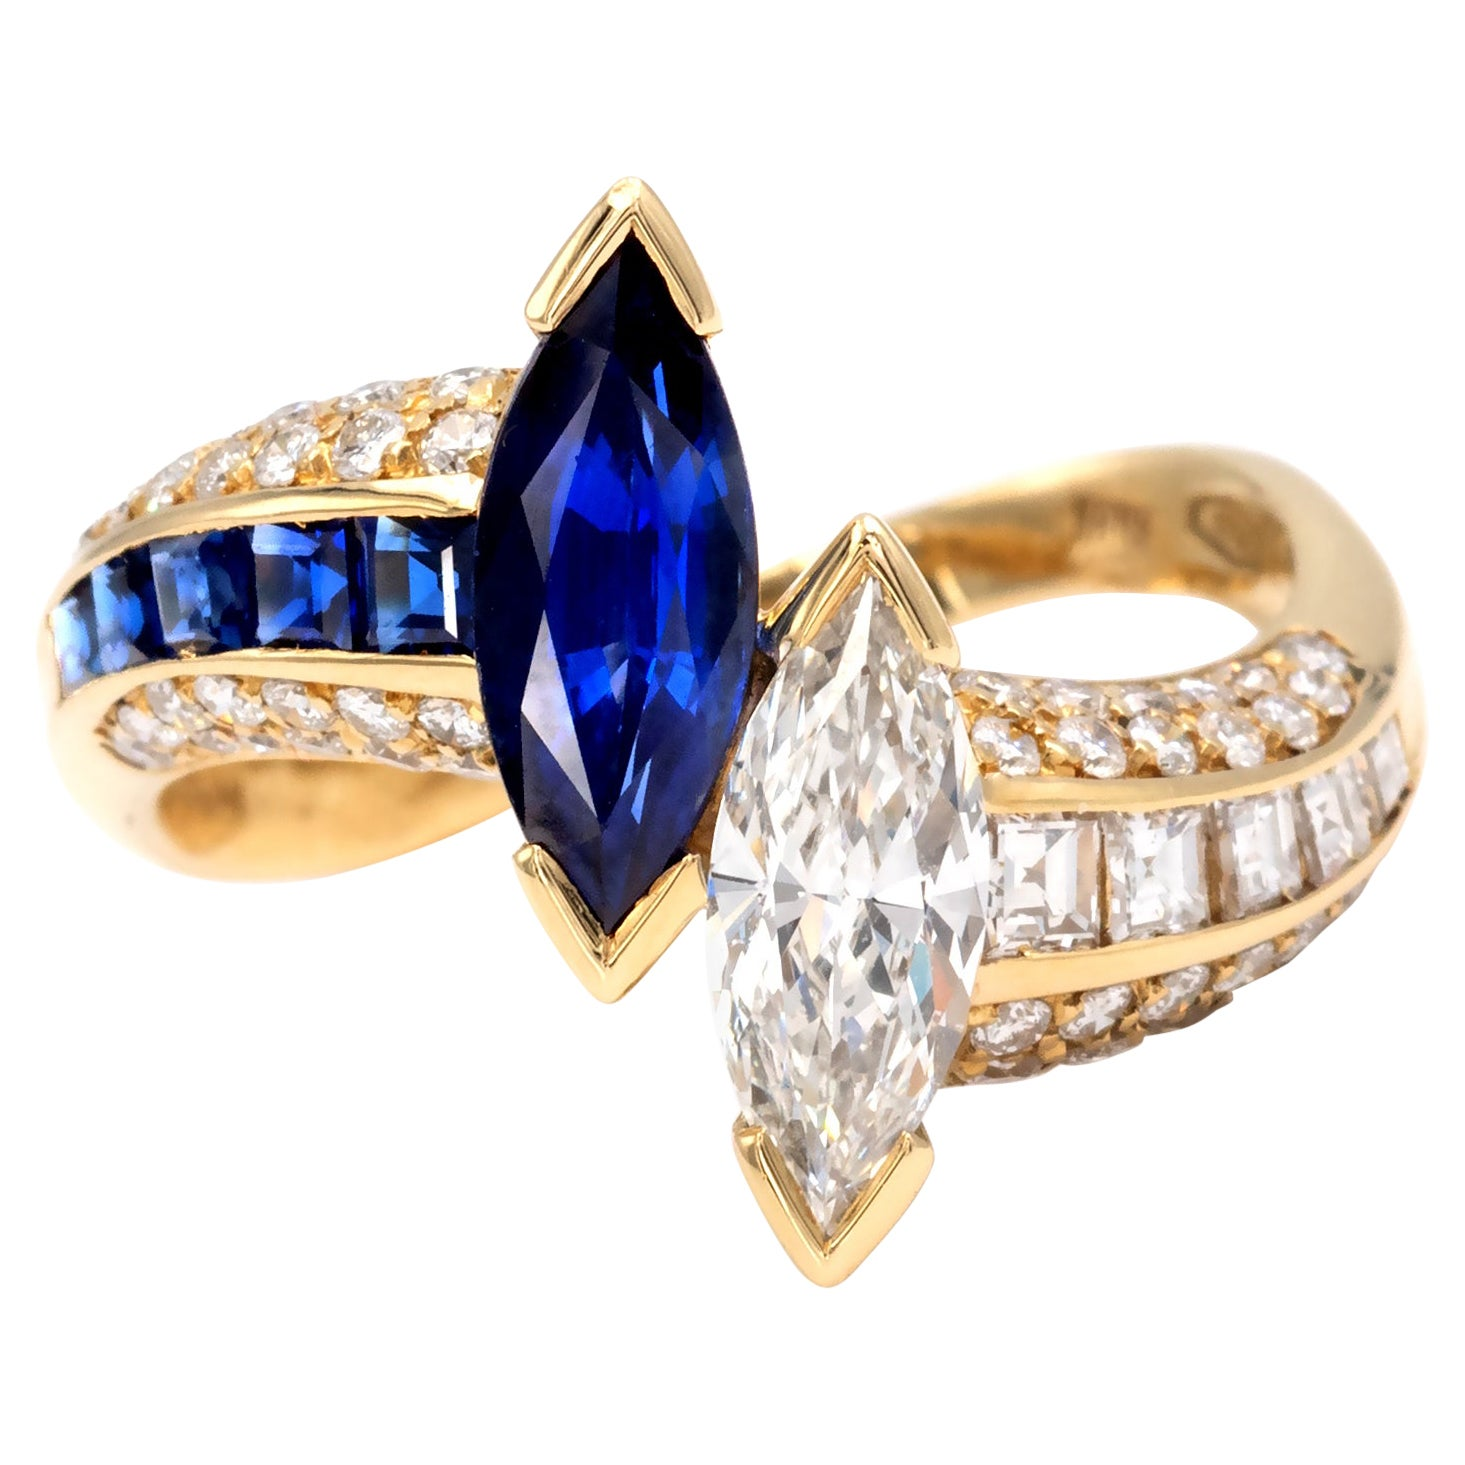 Diamond and Sapphire 18Kt Gold Toi et Moi Ring